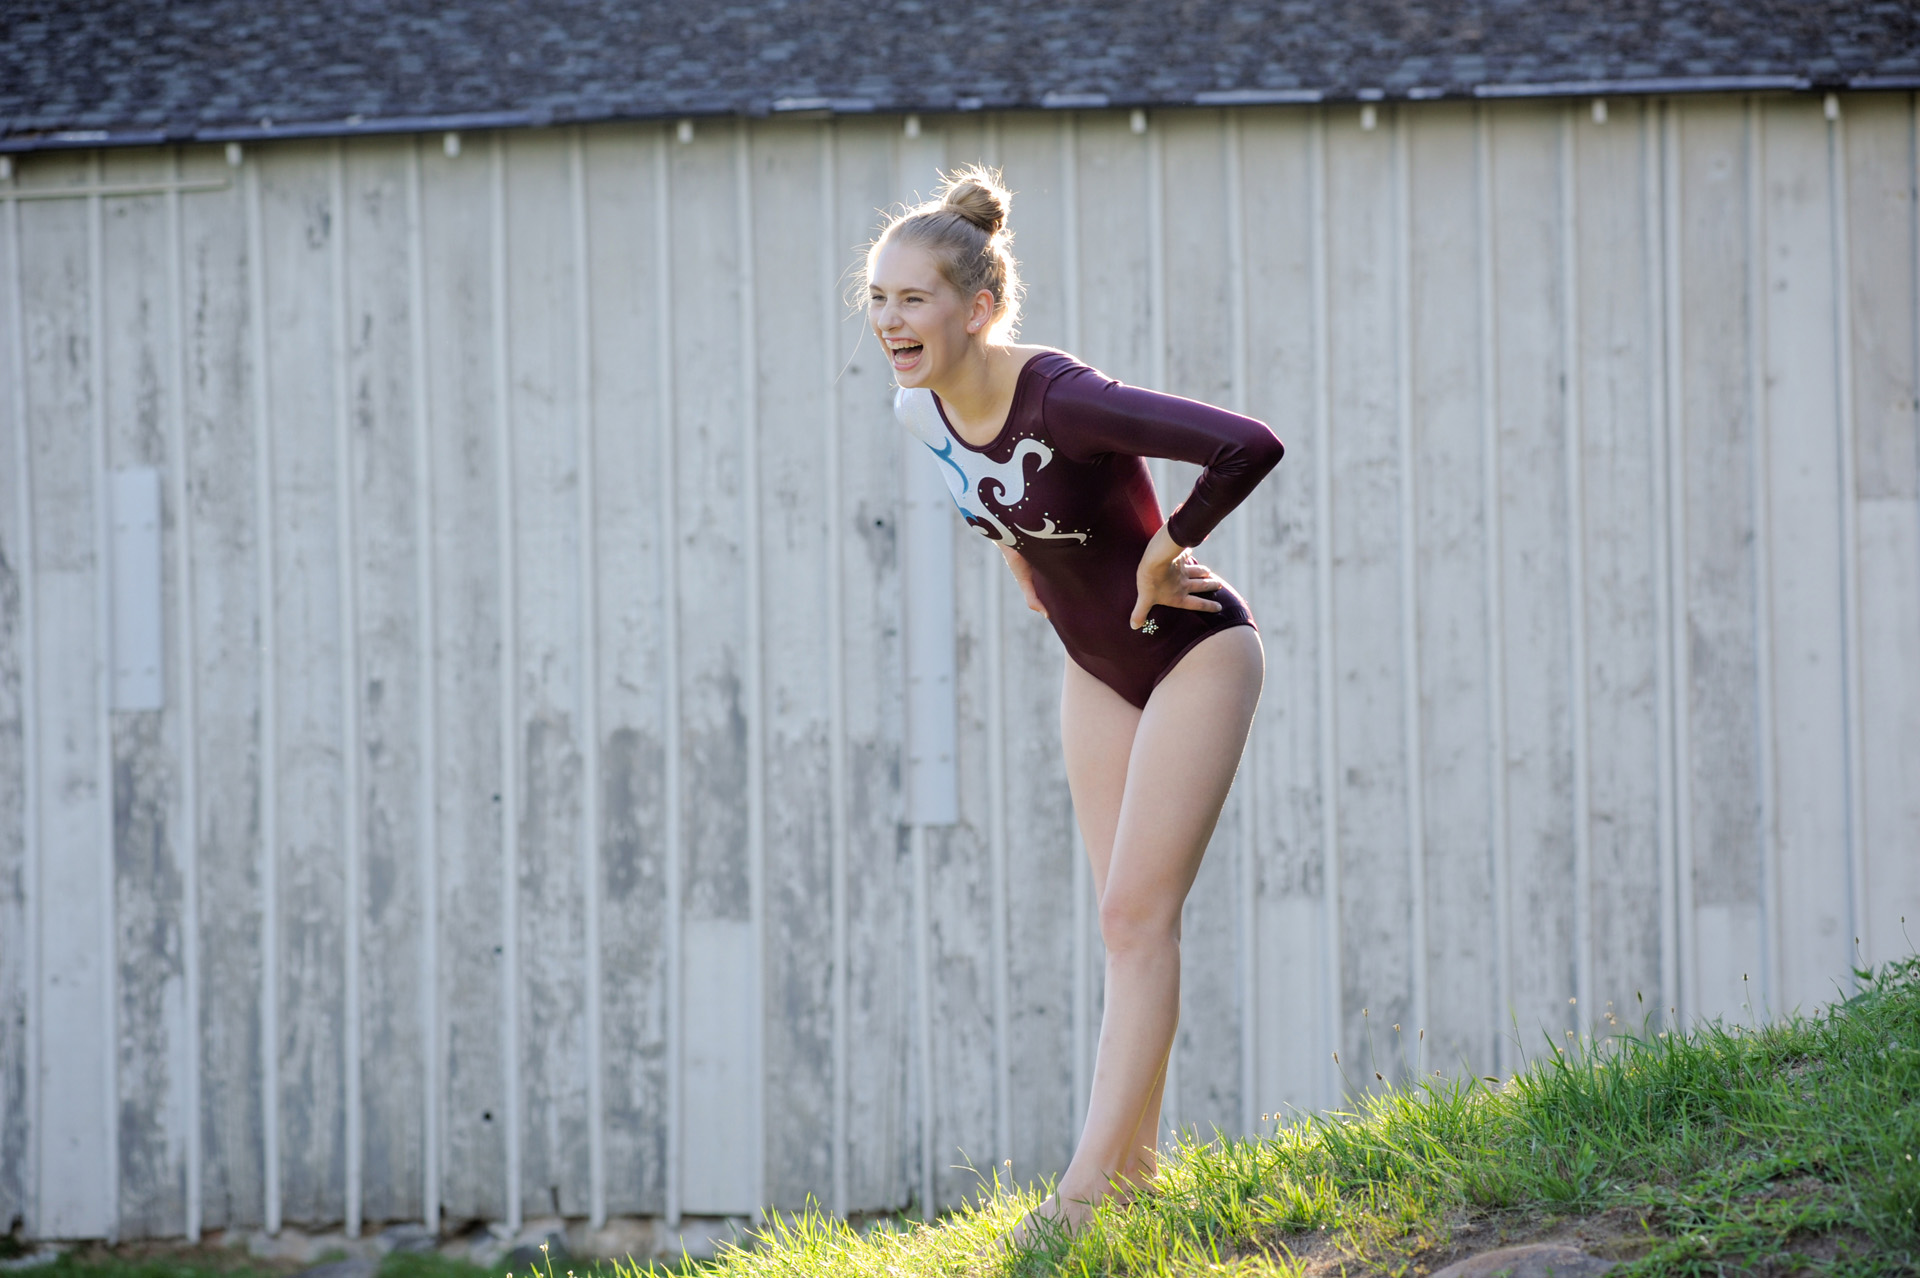 Troy , Michigan senior pictures photo of a high school gymnast senior laughs at the strangeness of going gymnastics on location for her senior pictures in Troy, Michigan.